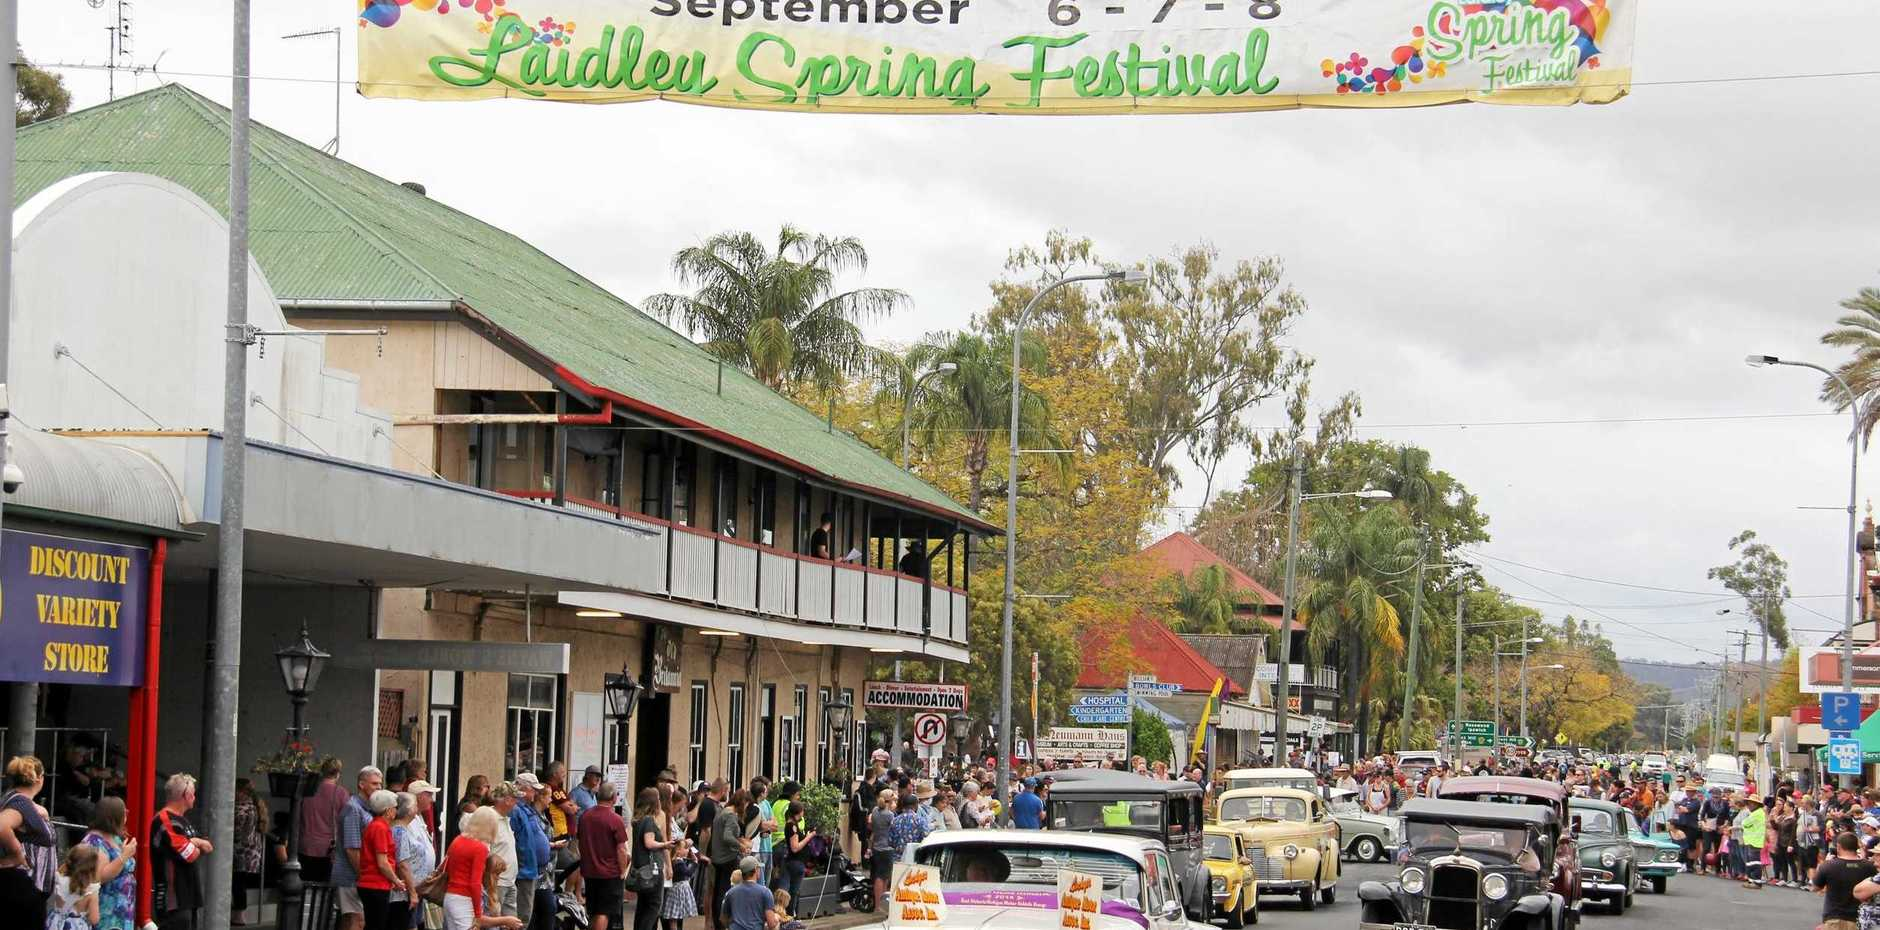 Thousands of people celebrated the 2018 Laidley Spring Festival.